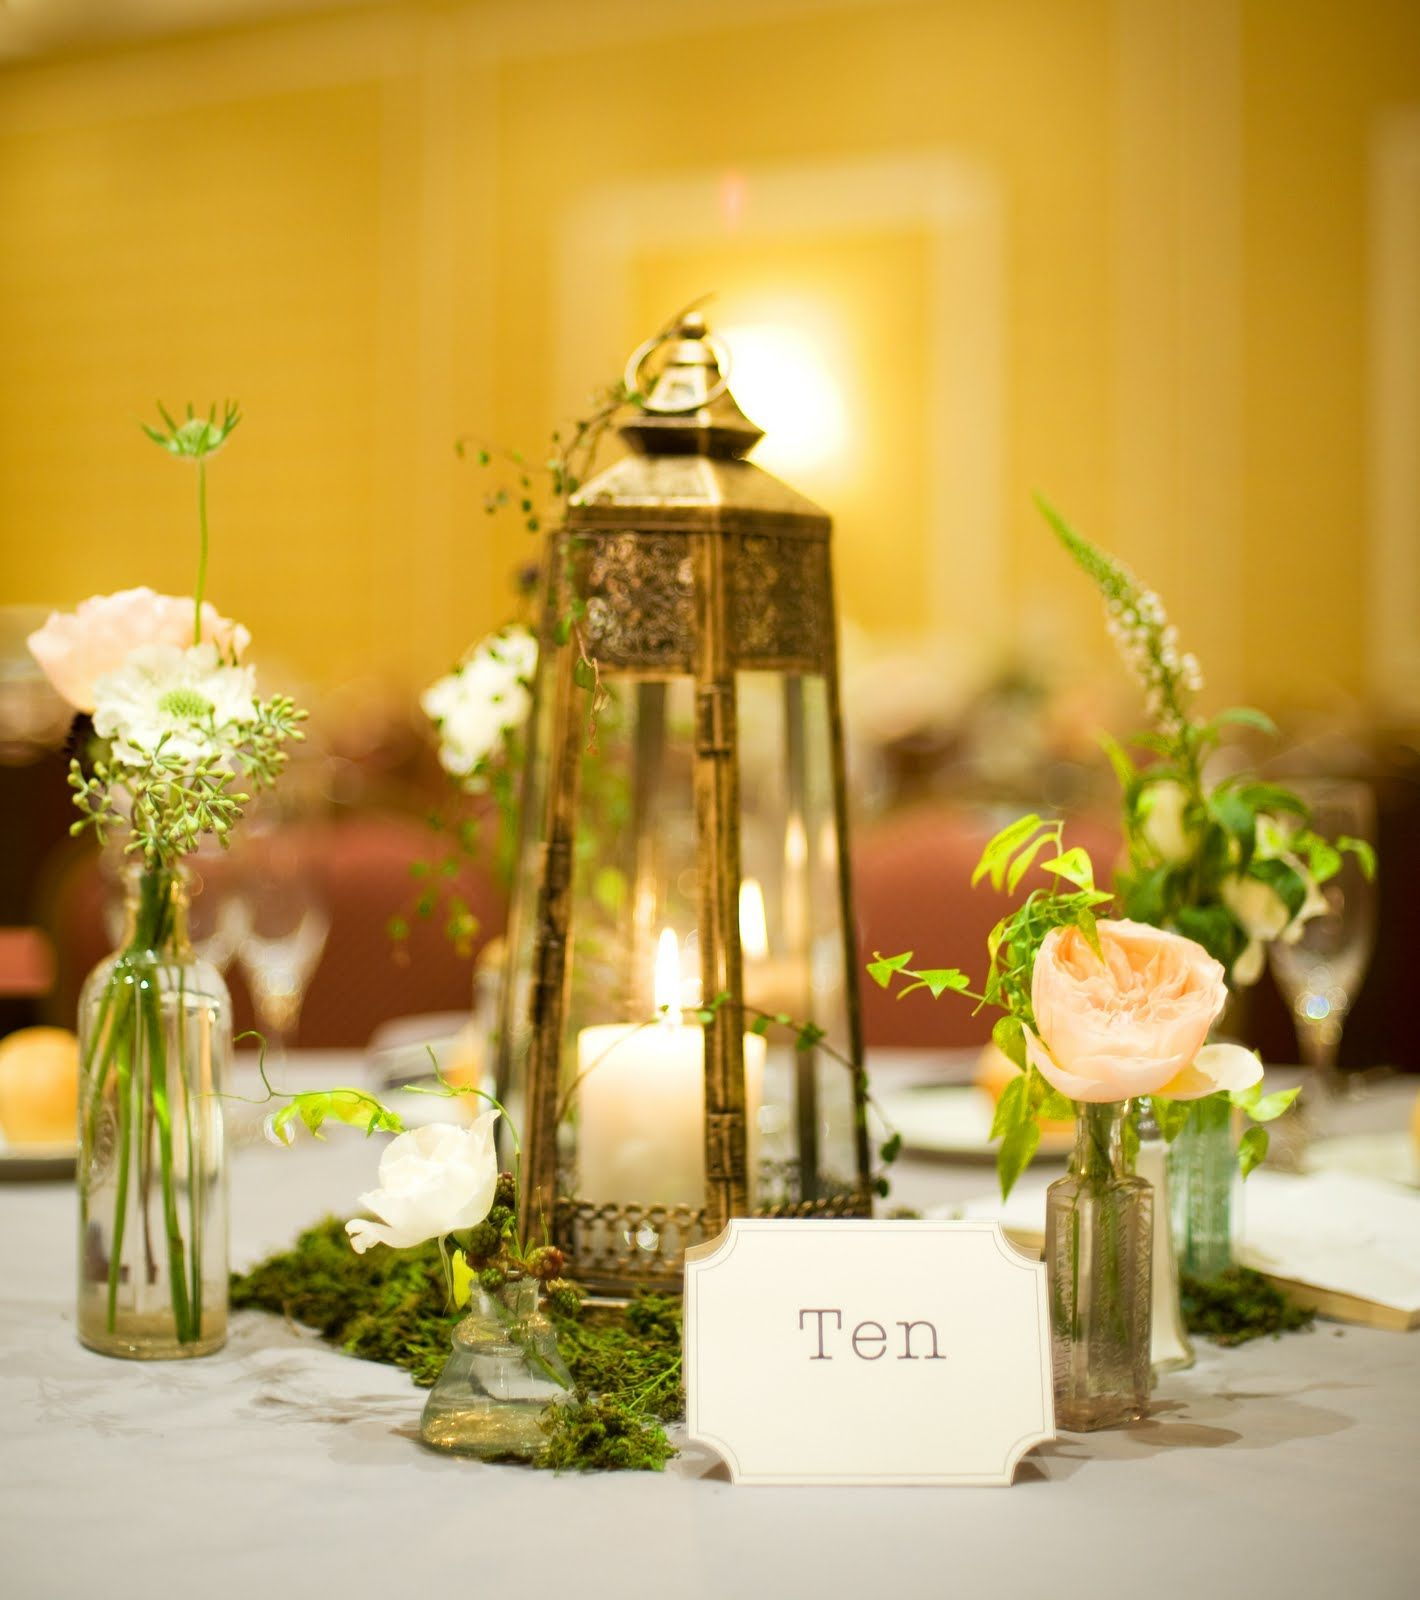 Rustic Lanterns And Bud Vases We Sub The Bud Vases For -5588